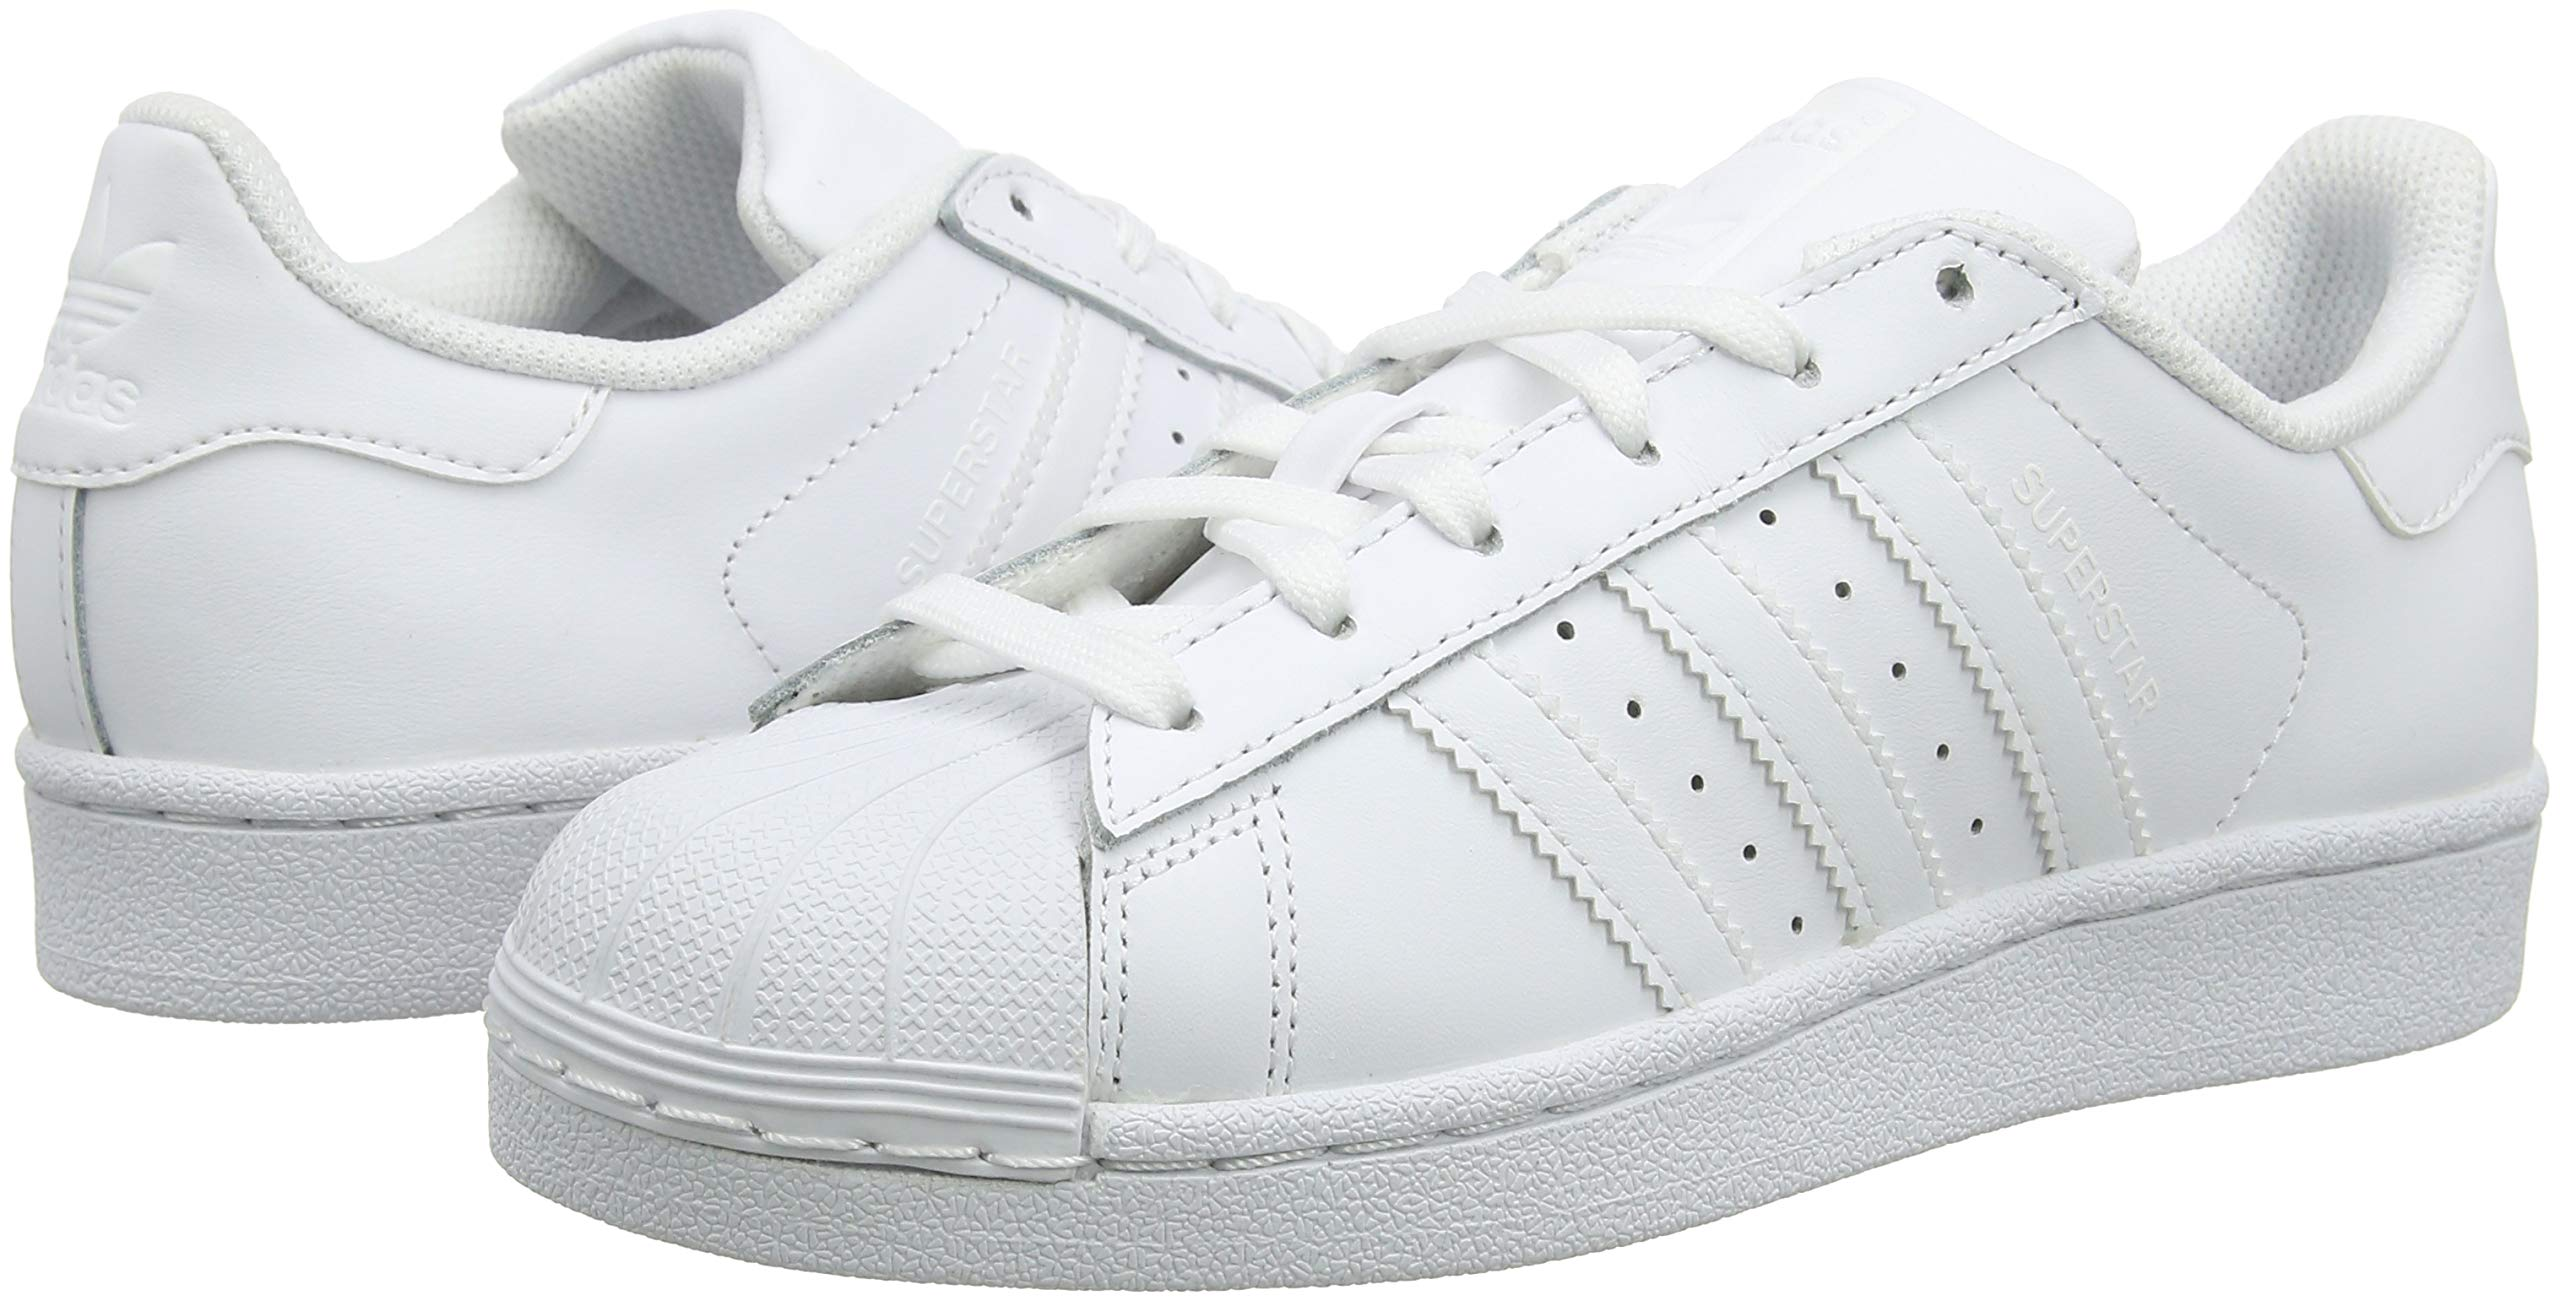 adidas Originals Superstar BB2872, Sneakers Unisex - Bambini 5 spesavip